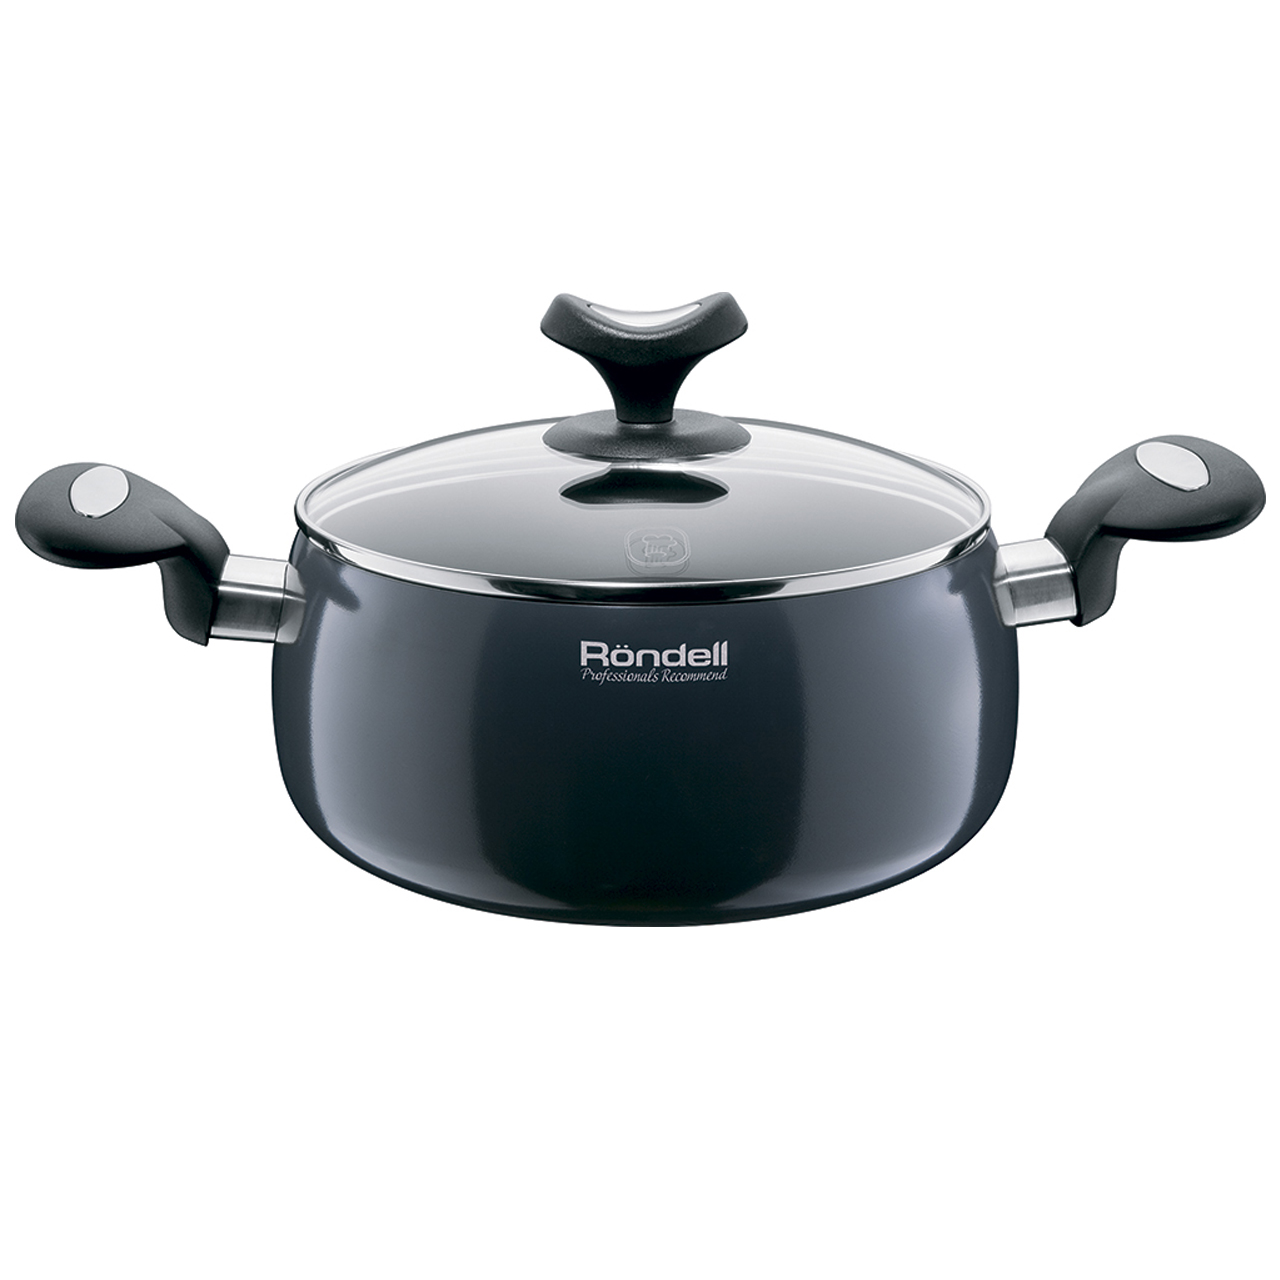 Casserole with lid Rondell Delice 20 cm (3,2 L) RDA-077 casserole with lid rondell walzer 4 3 l rda 766